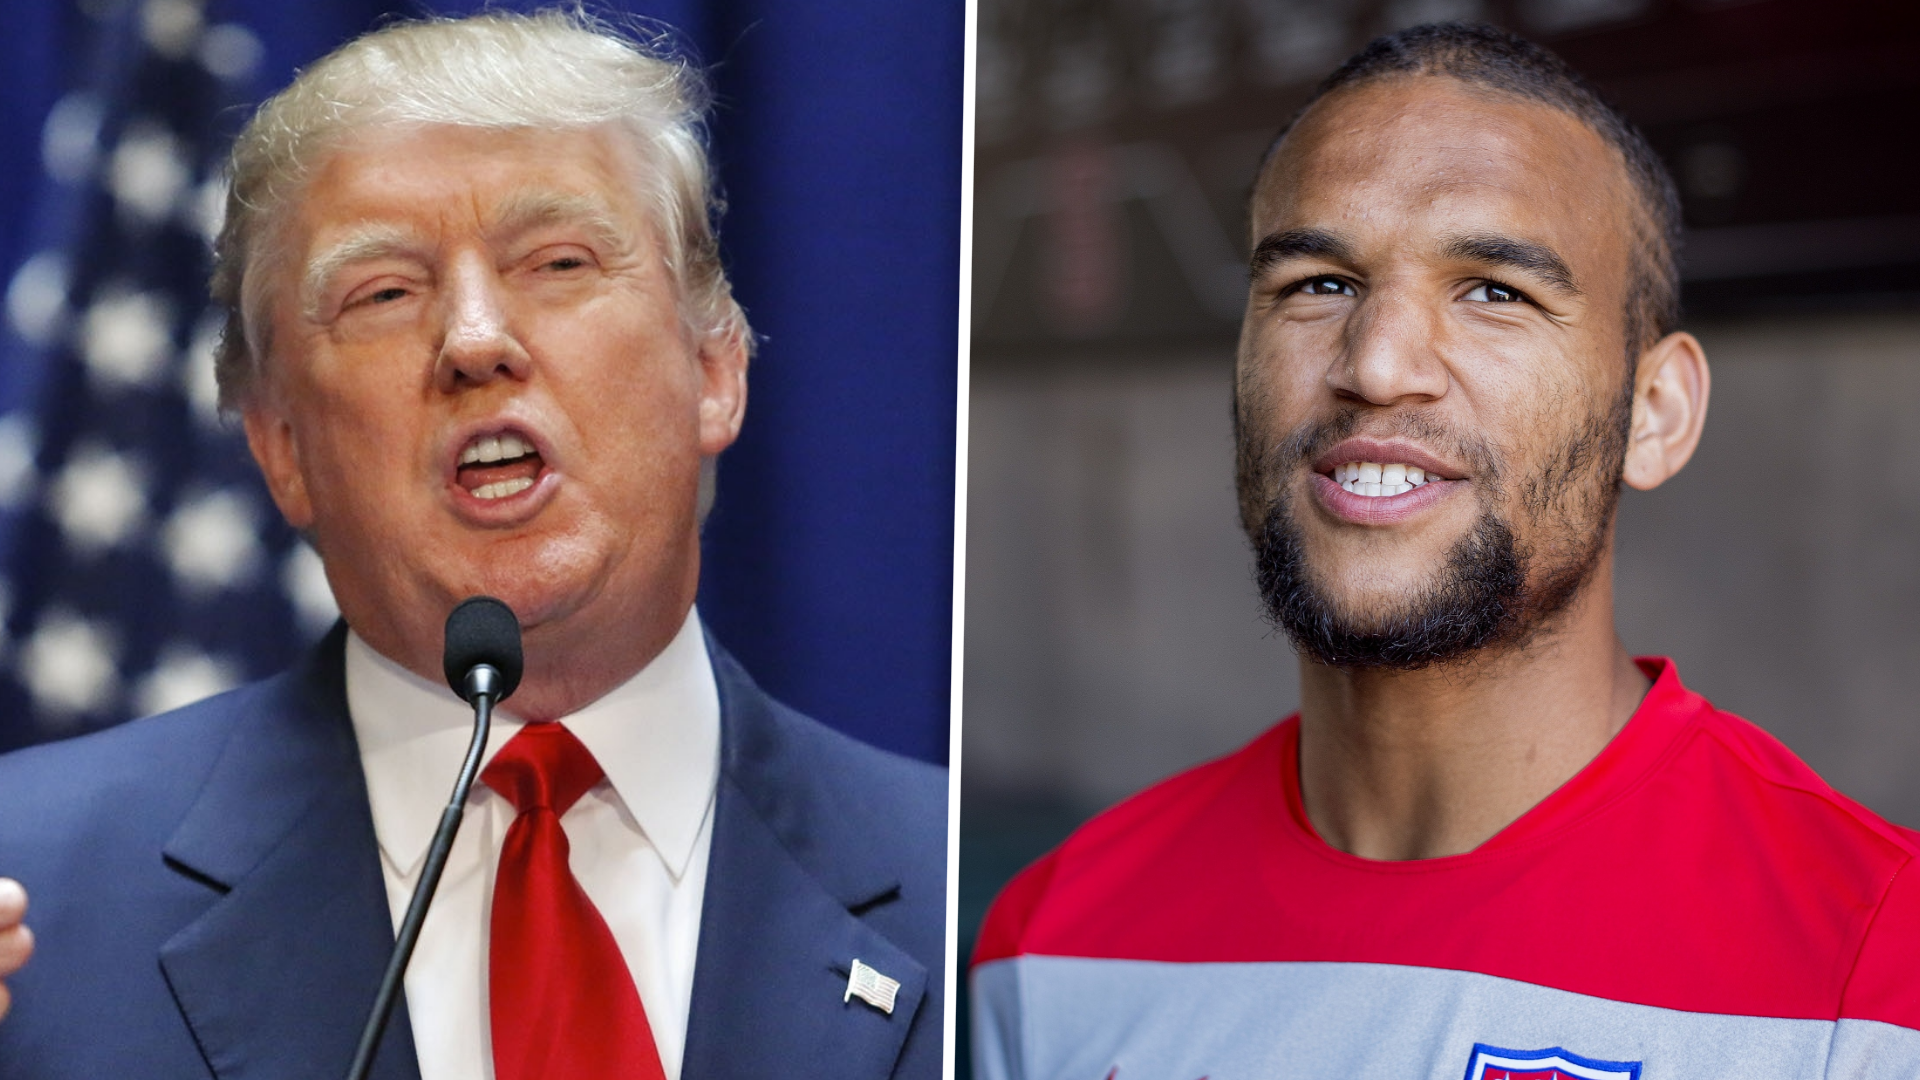 Donald Trump is one of the worst people on the planet, says ex-USMNT striker Boyd